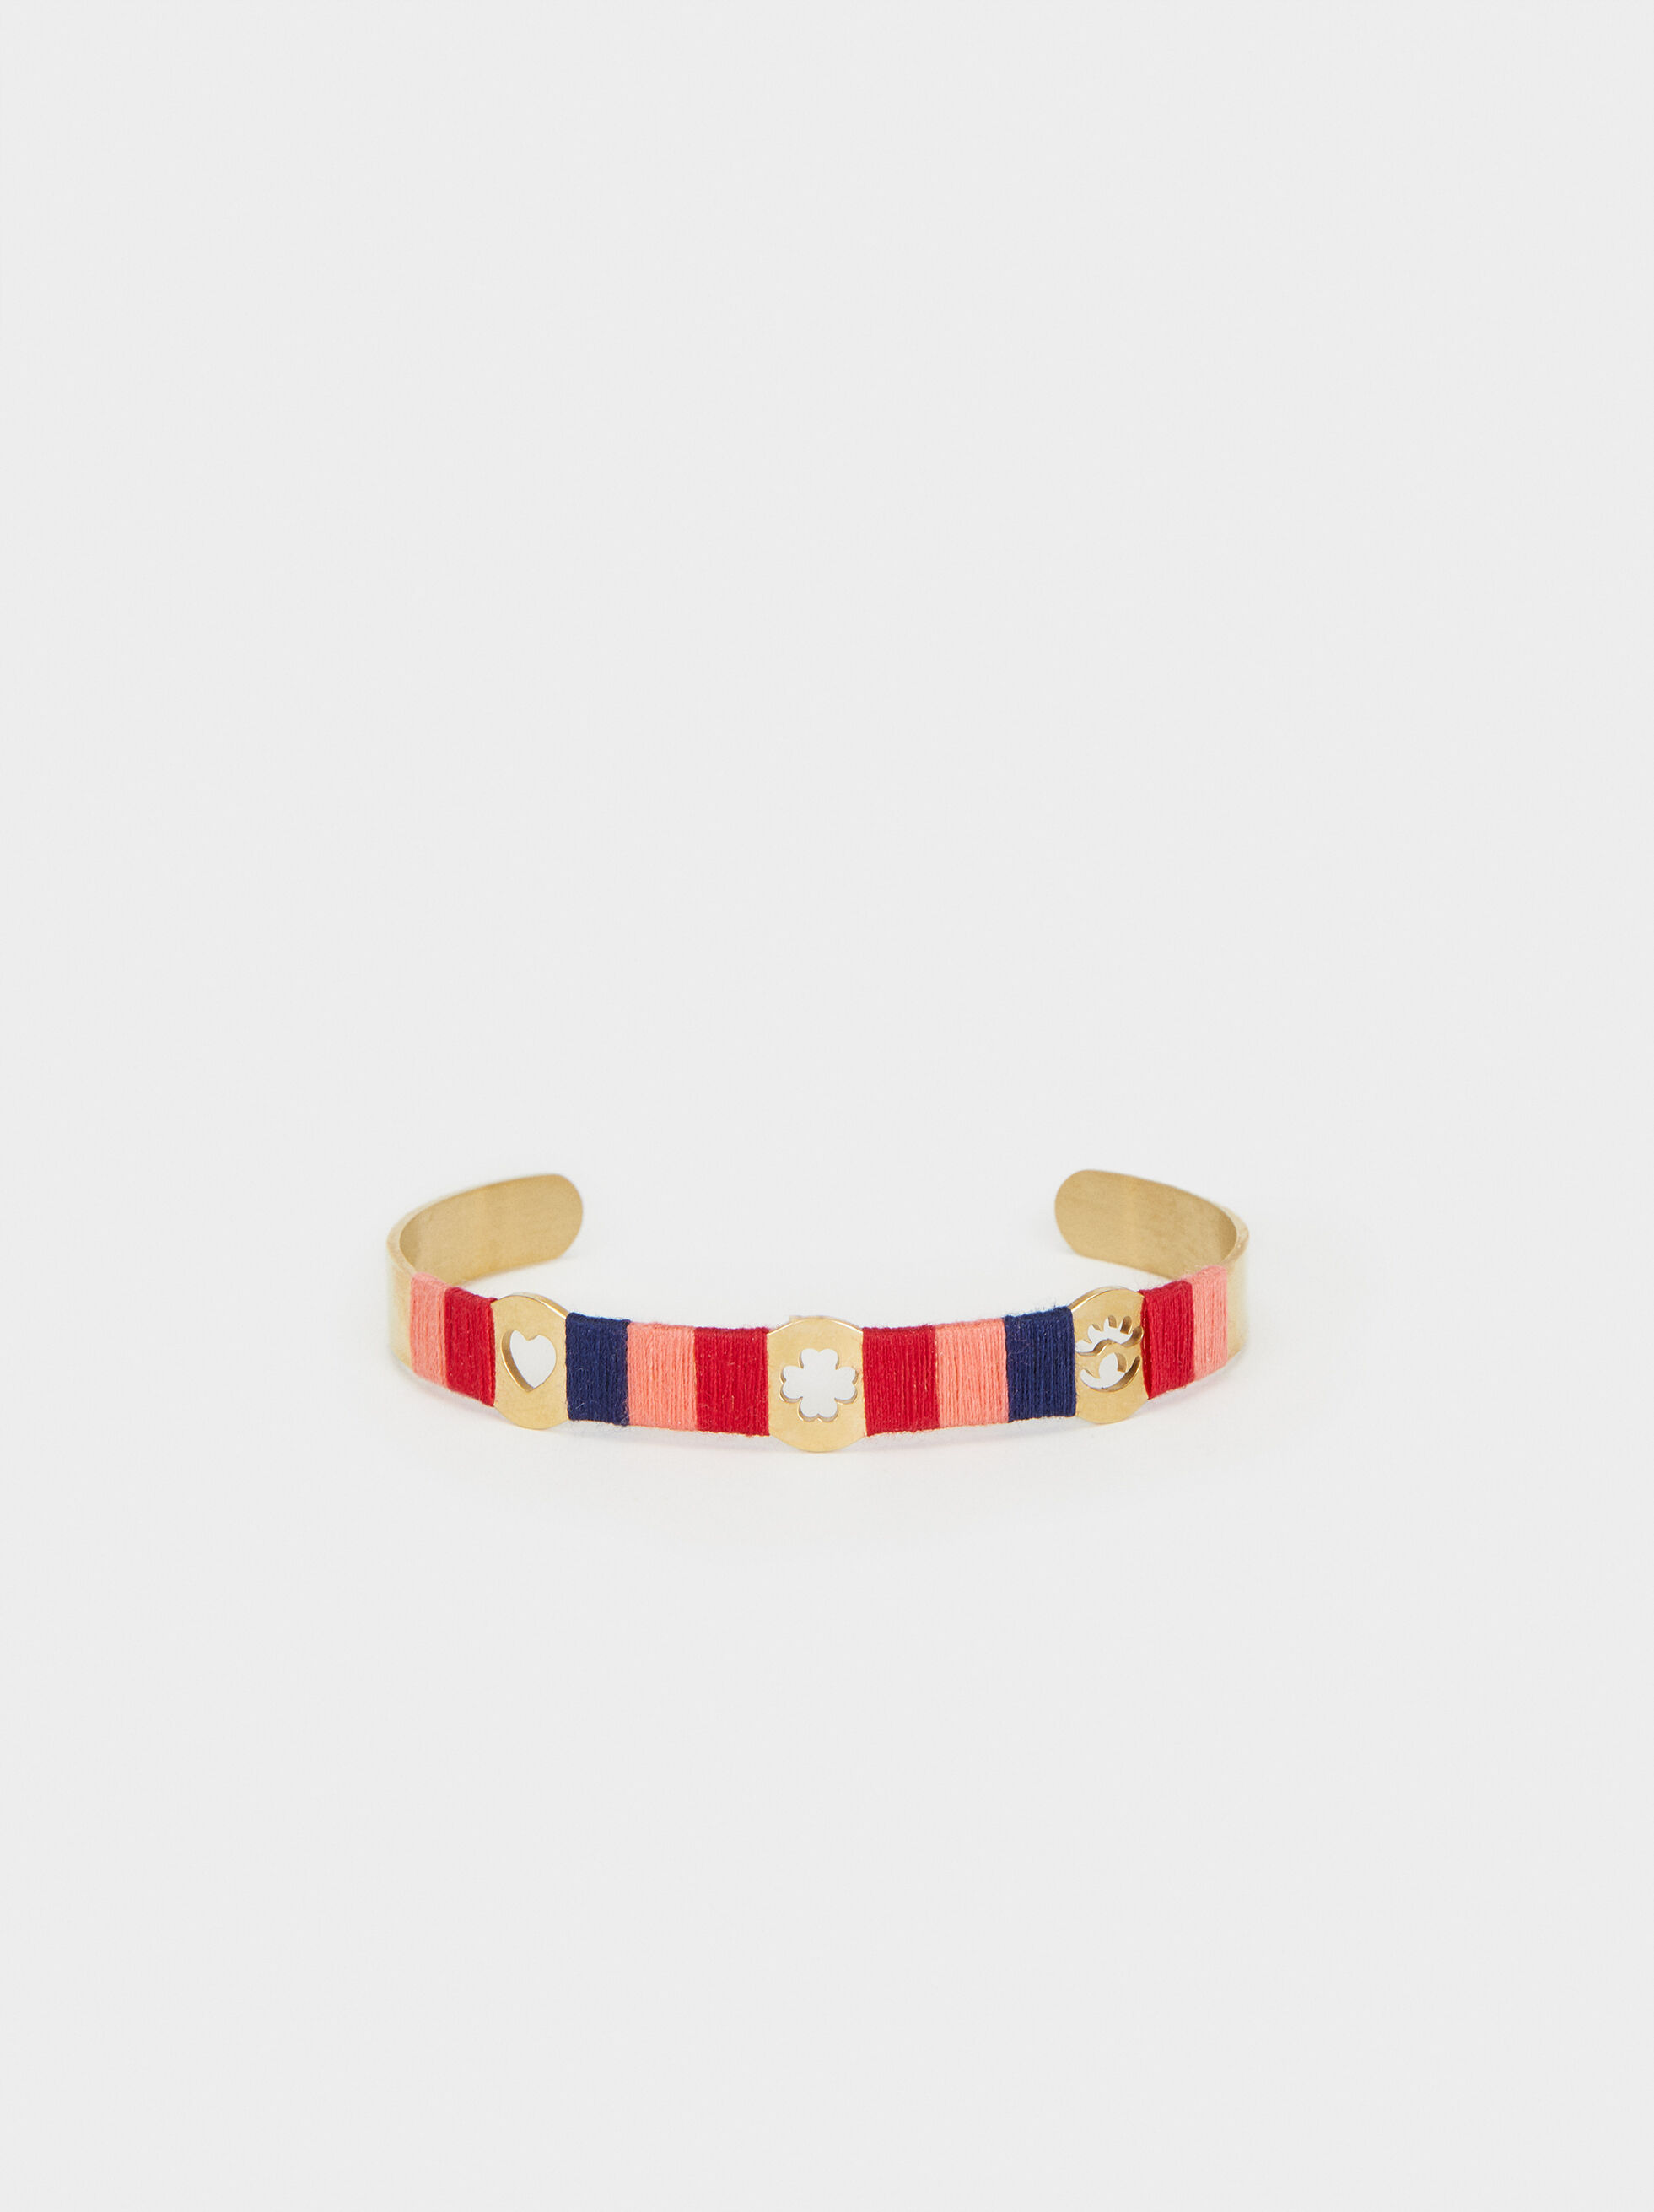 Strawberry Rigid Bracelet, Multicolor, hi-res